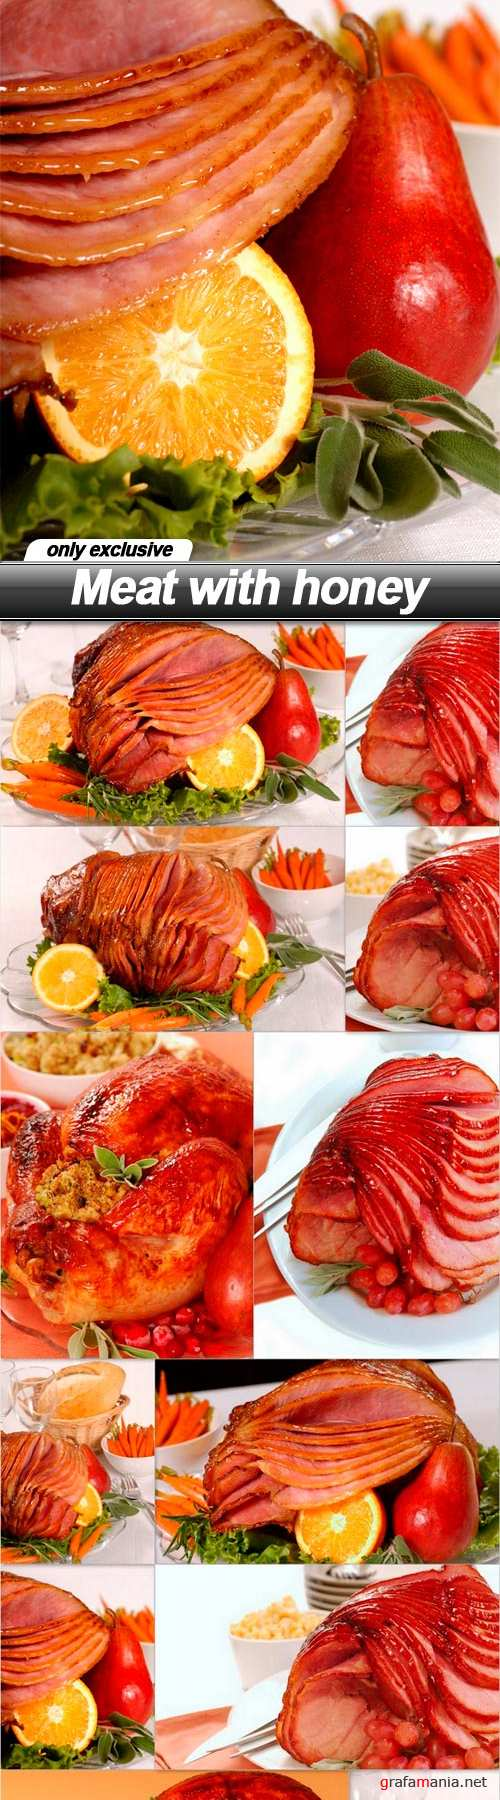 Meat with honey - 12 UHQ JPEG